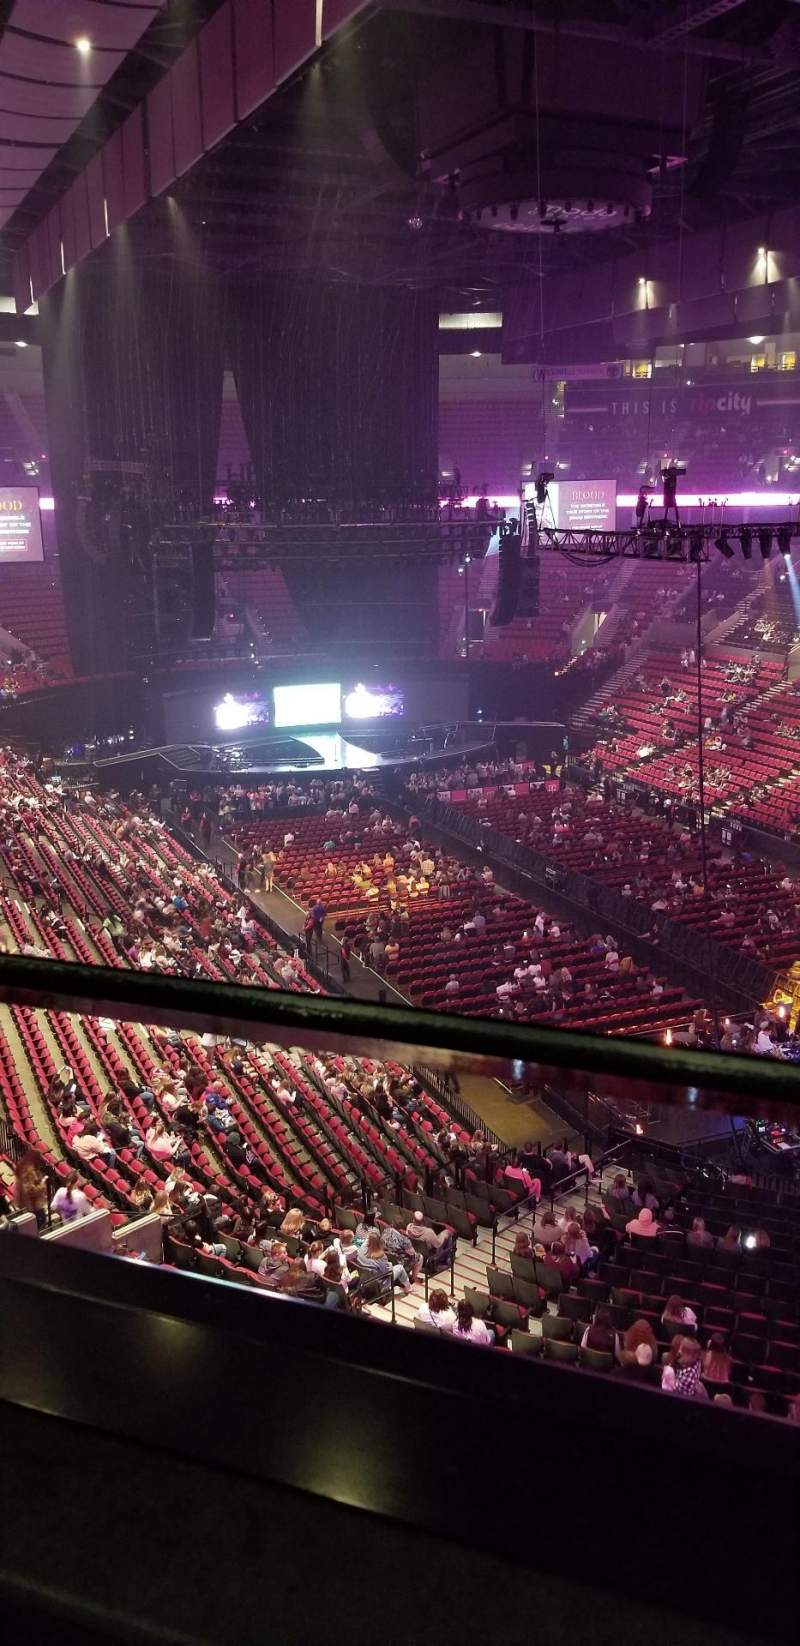 Seating view for Moda Center Section 330 Row A Seat 1